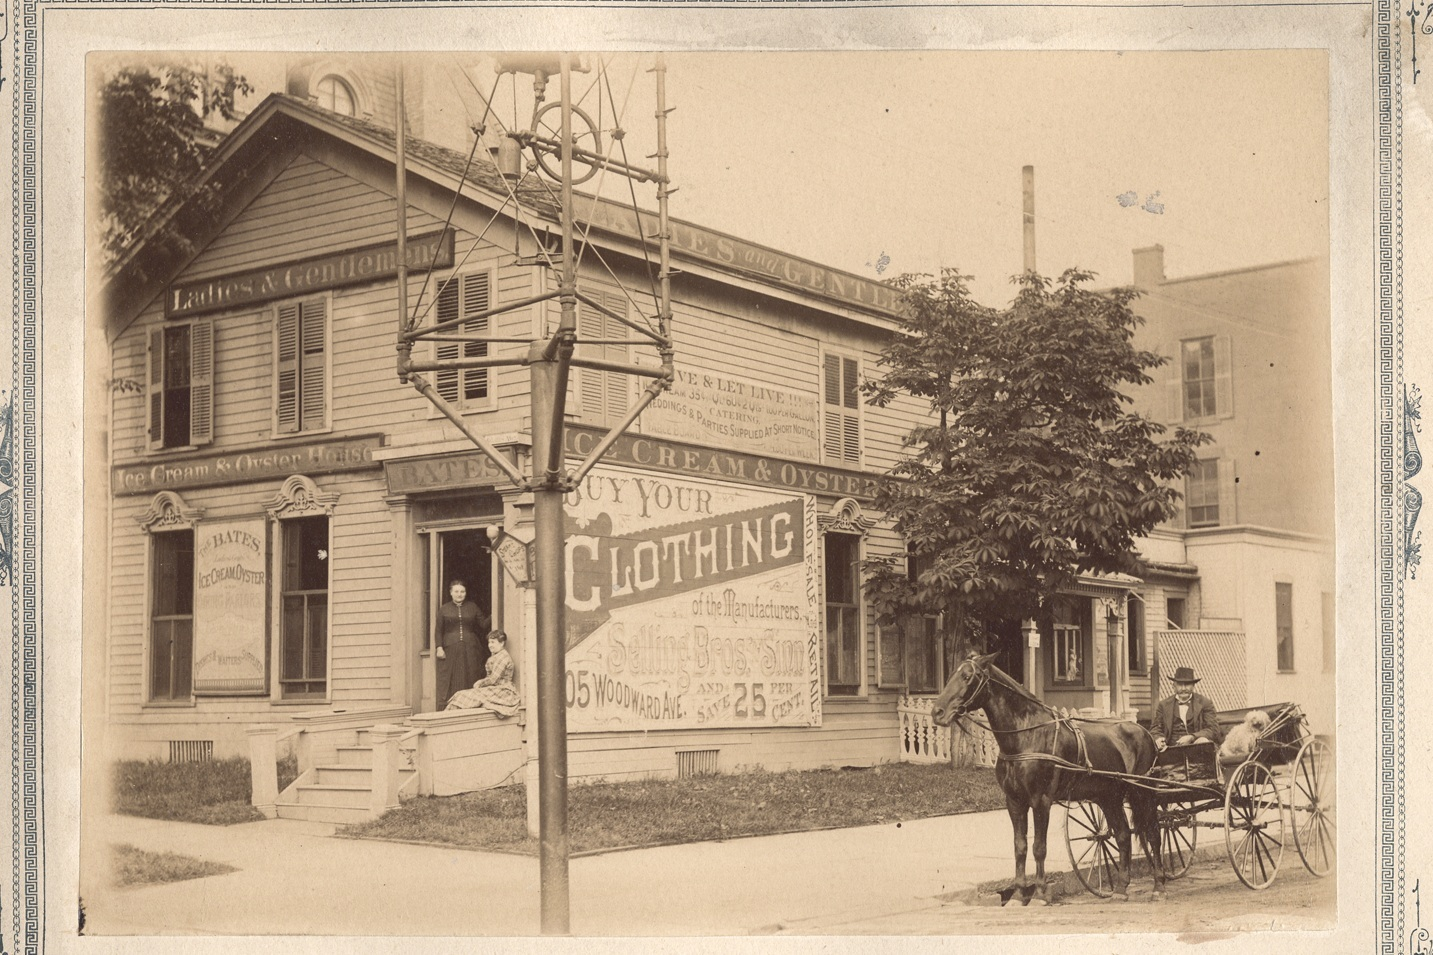 """There were almost 100 businesses owned by black people in Detroit prior to the Civil War. A black man was the first to own and operate an Ice Cream Polar which was located on Bates Street in the 1860's Bates Street which was home to many minority businesses was """"gentrified"""" in the 1970's to make way for the I-75 freeway."""